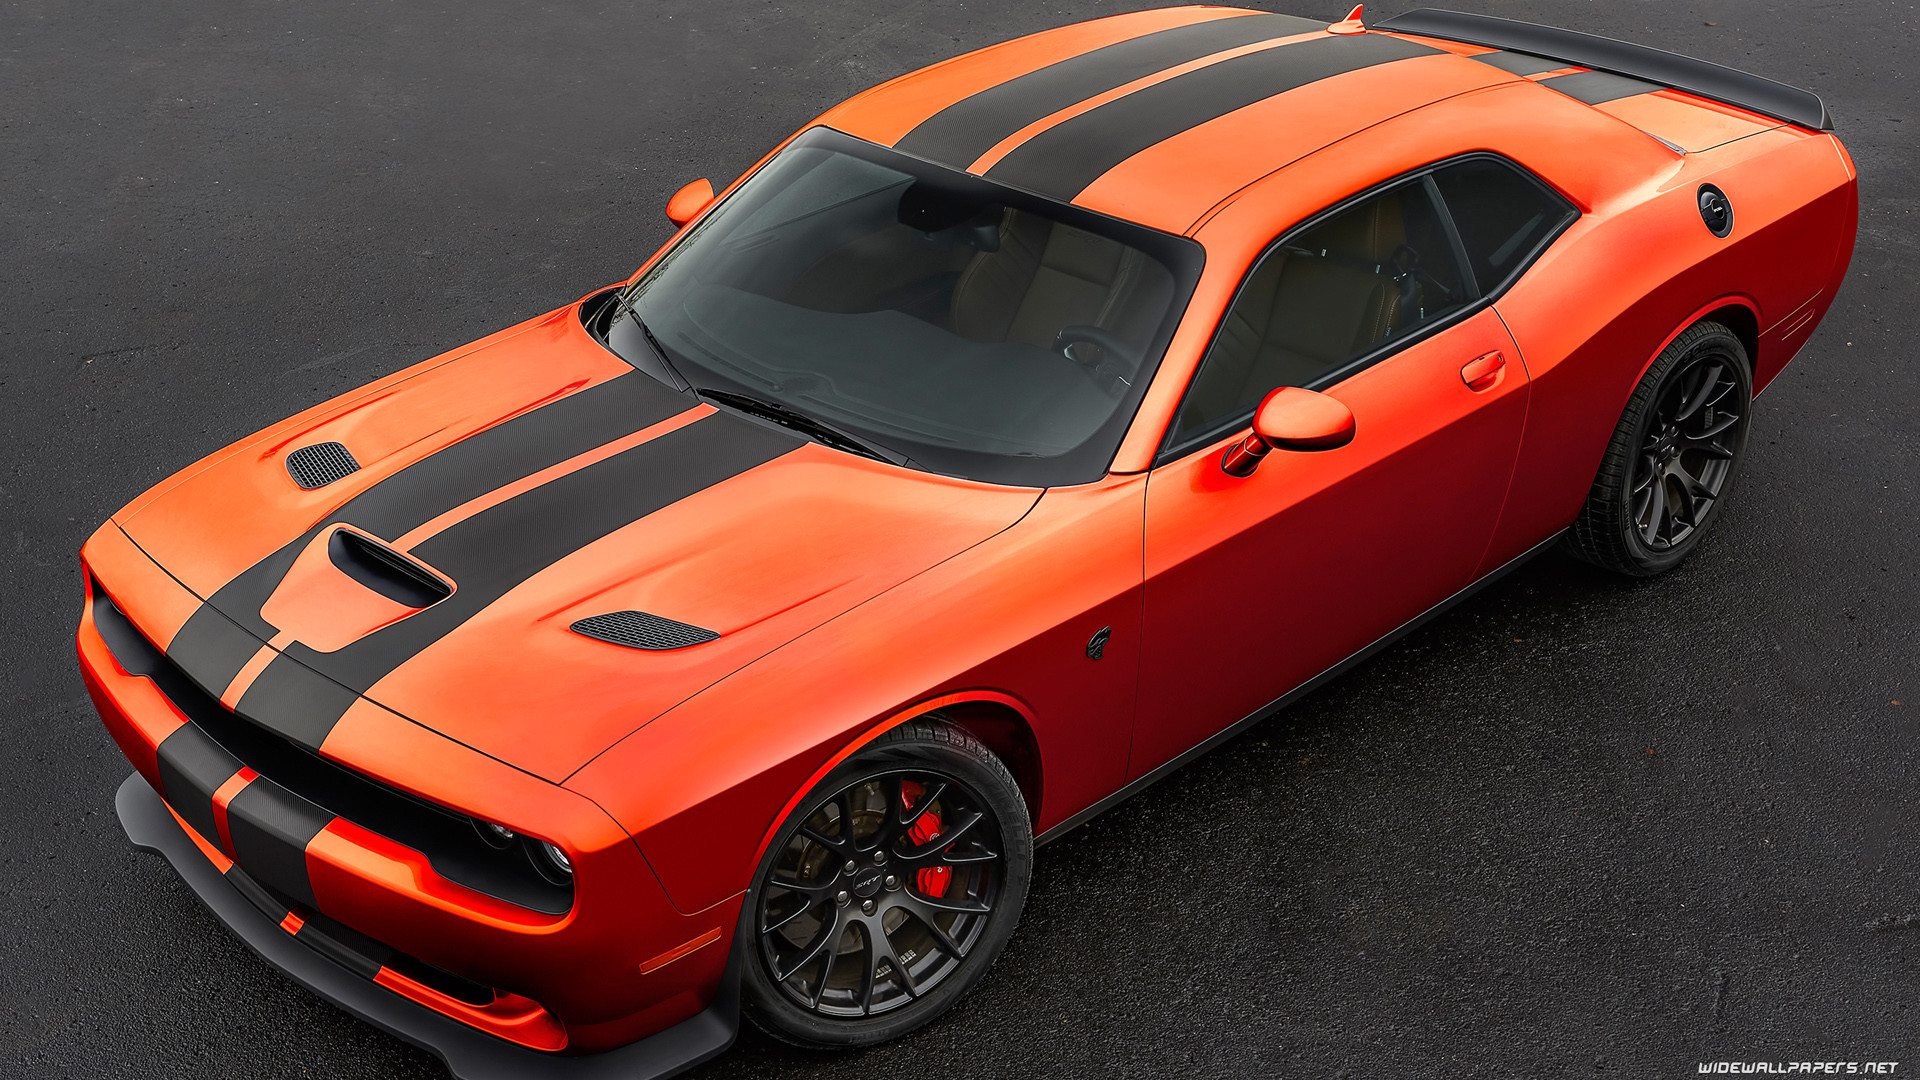 1920x1080 Dodge Challenger SRT Hellcat Go Mango car wallpapers